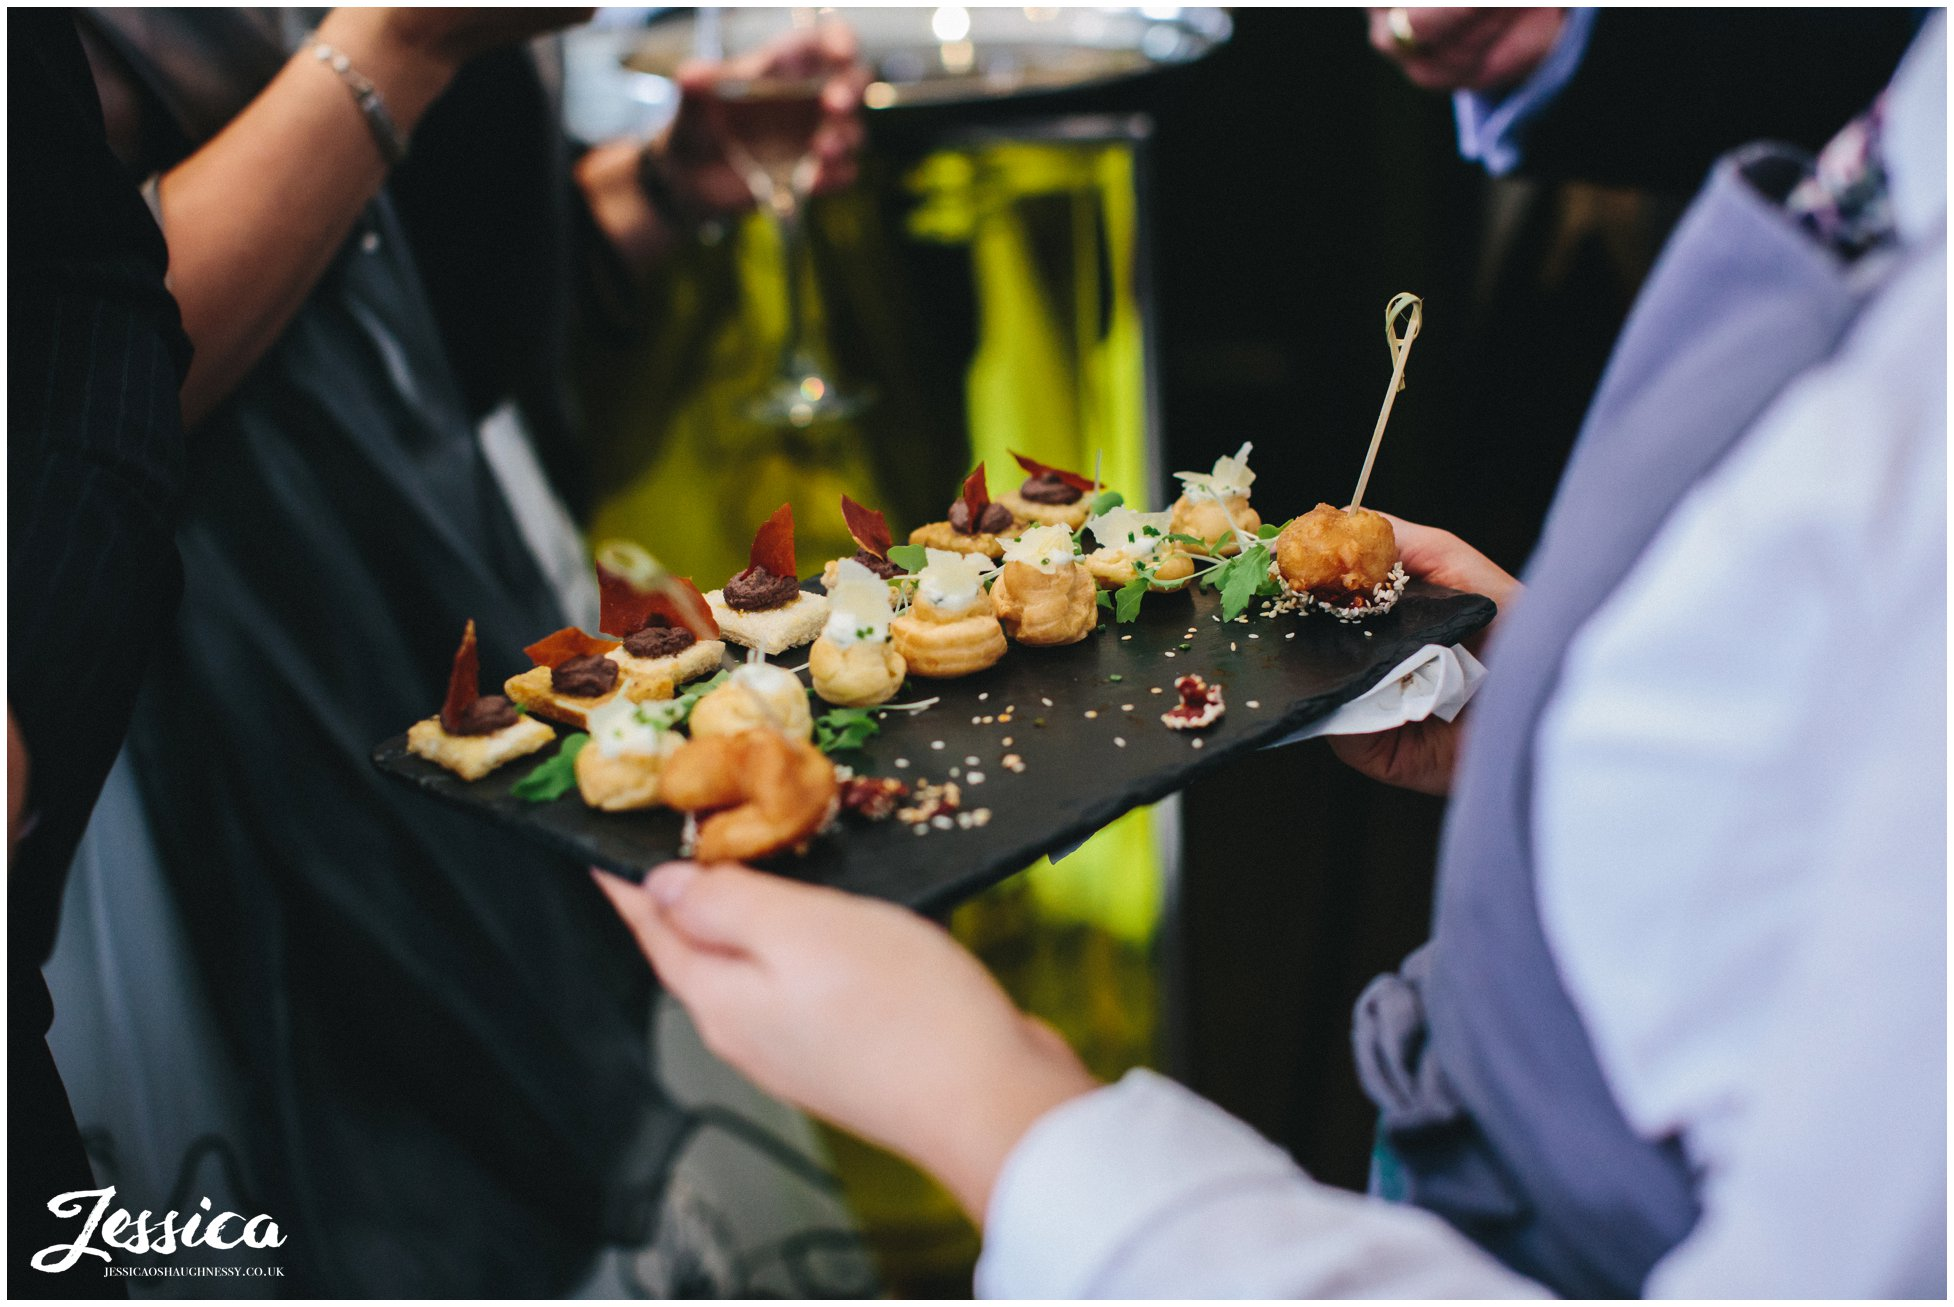 canapes served at oddfellows wedding reception in chester